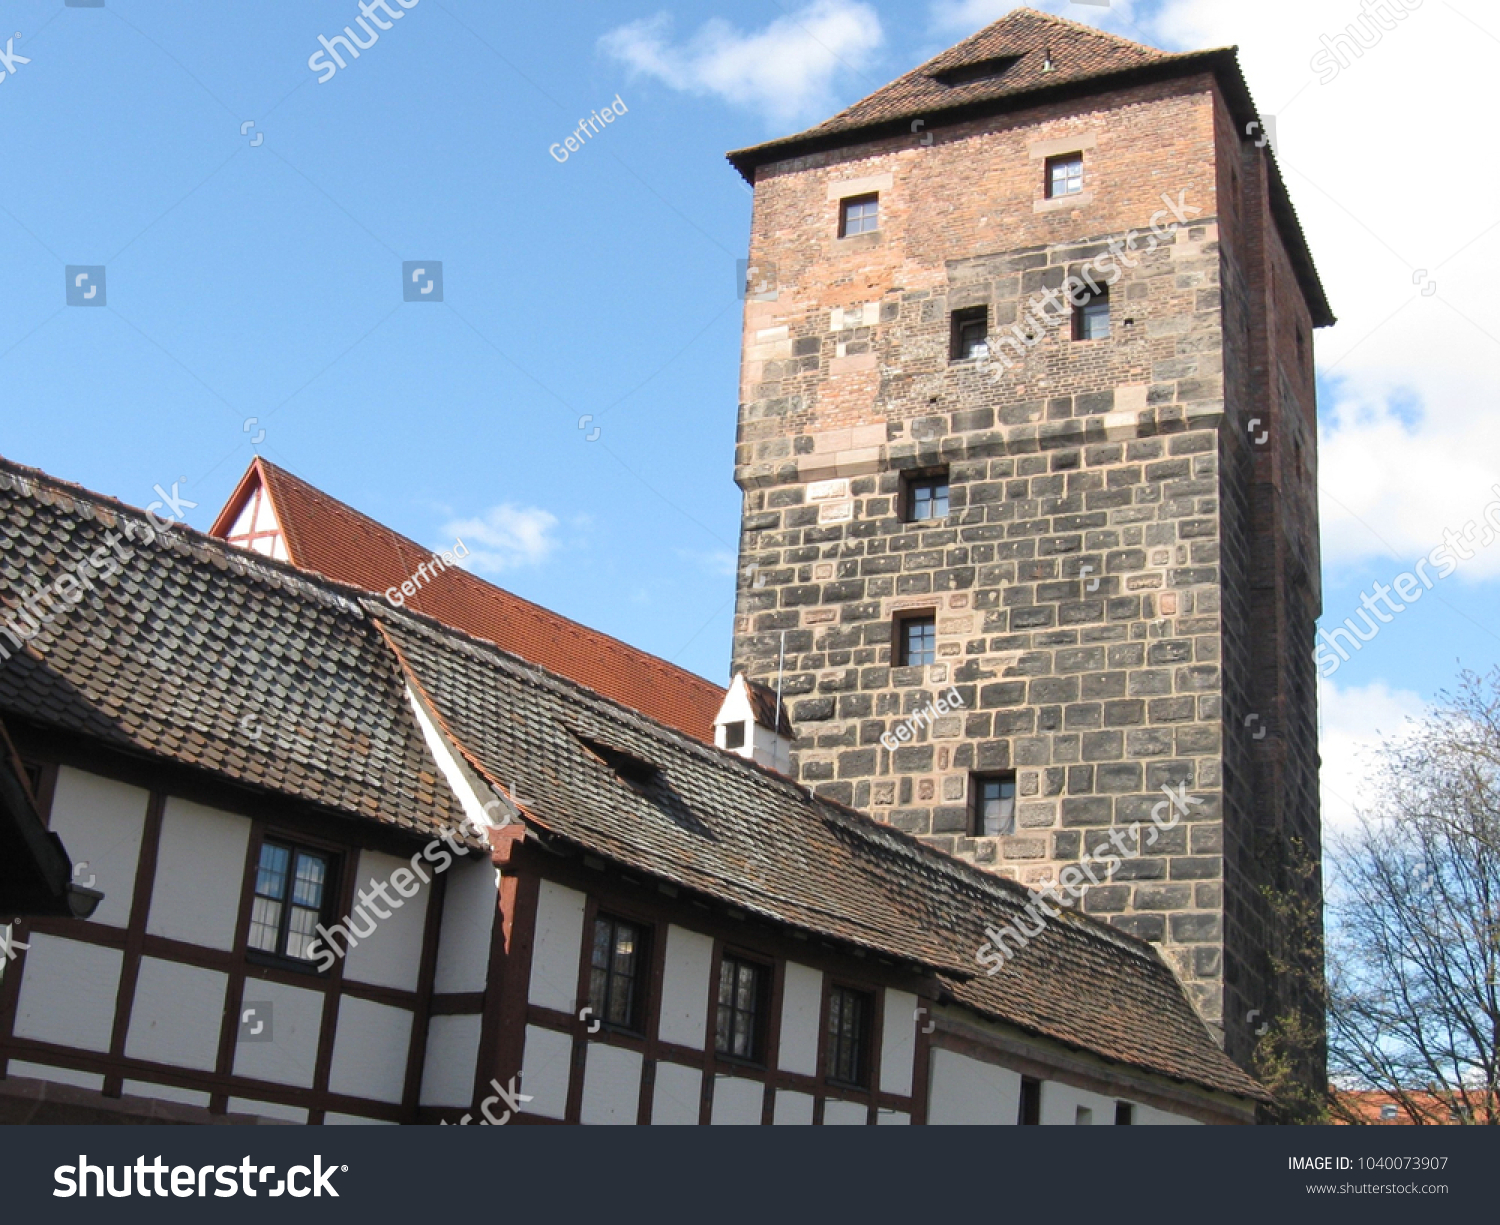 Sanders Nürnberg Tower Castle Nuremberg Germany Building Middle Stock Photo Edit